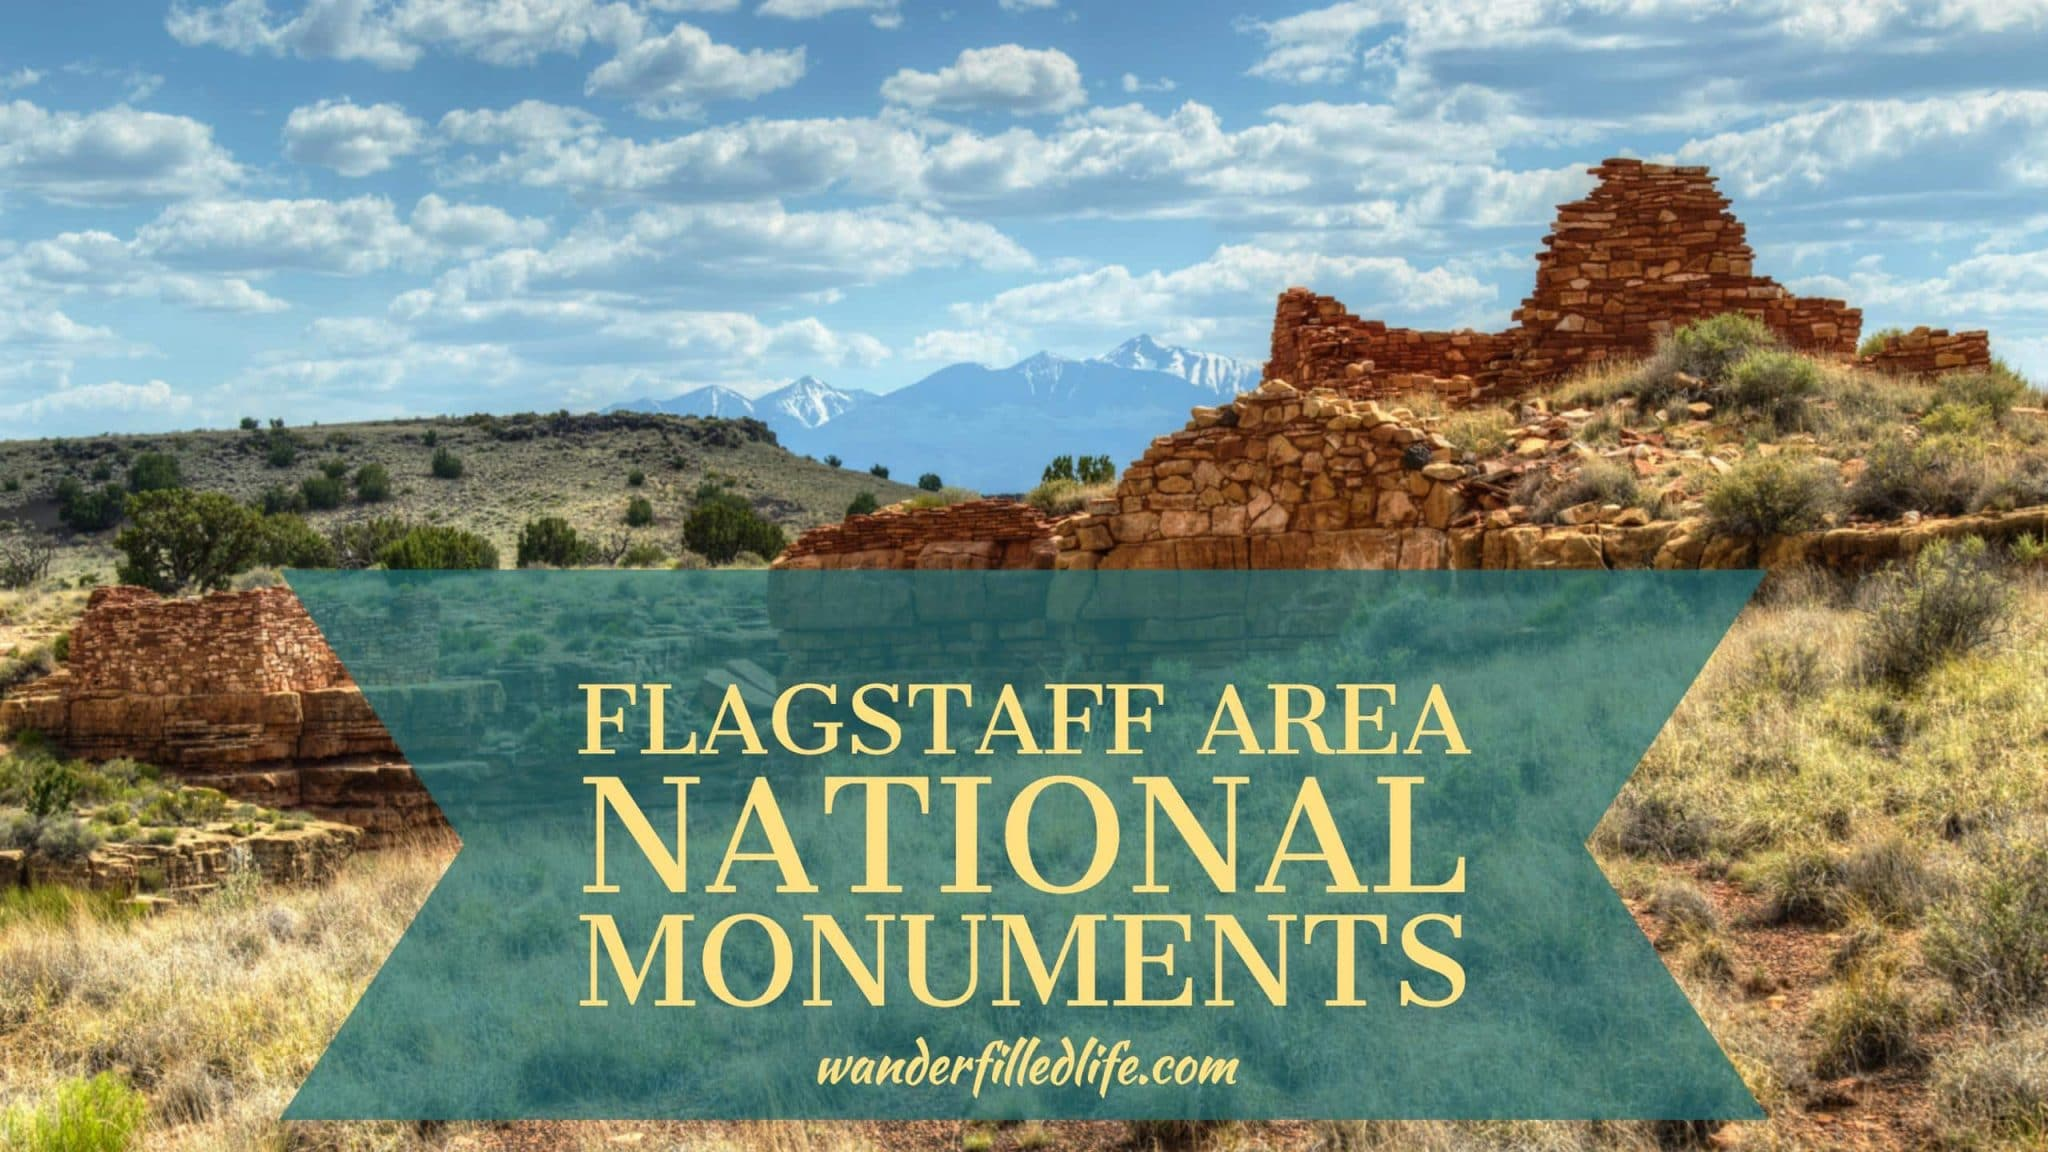 Visiting the Flagstaff Area National Monuments